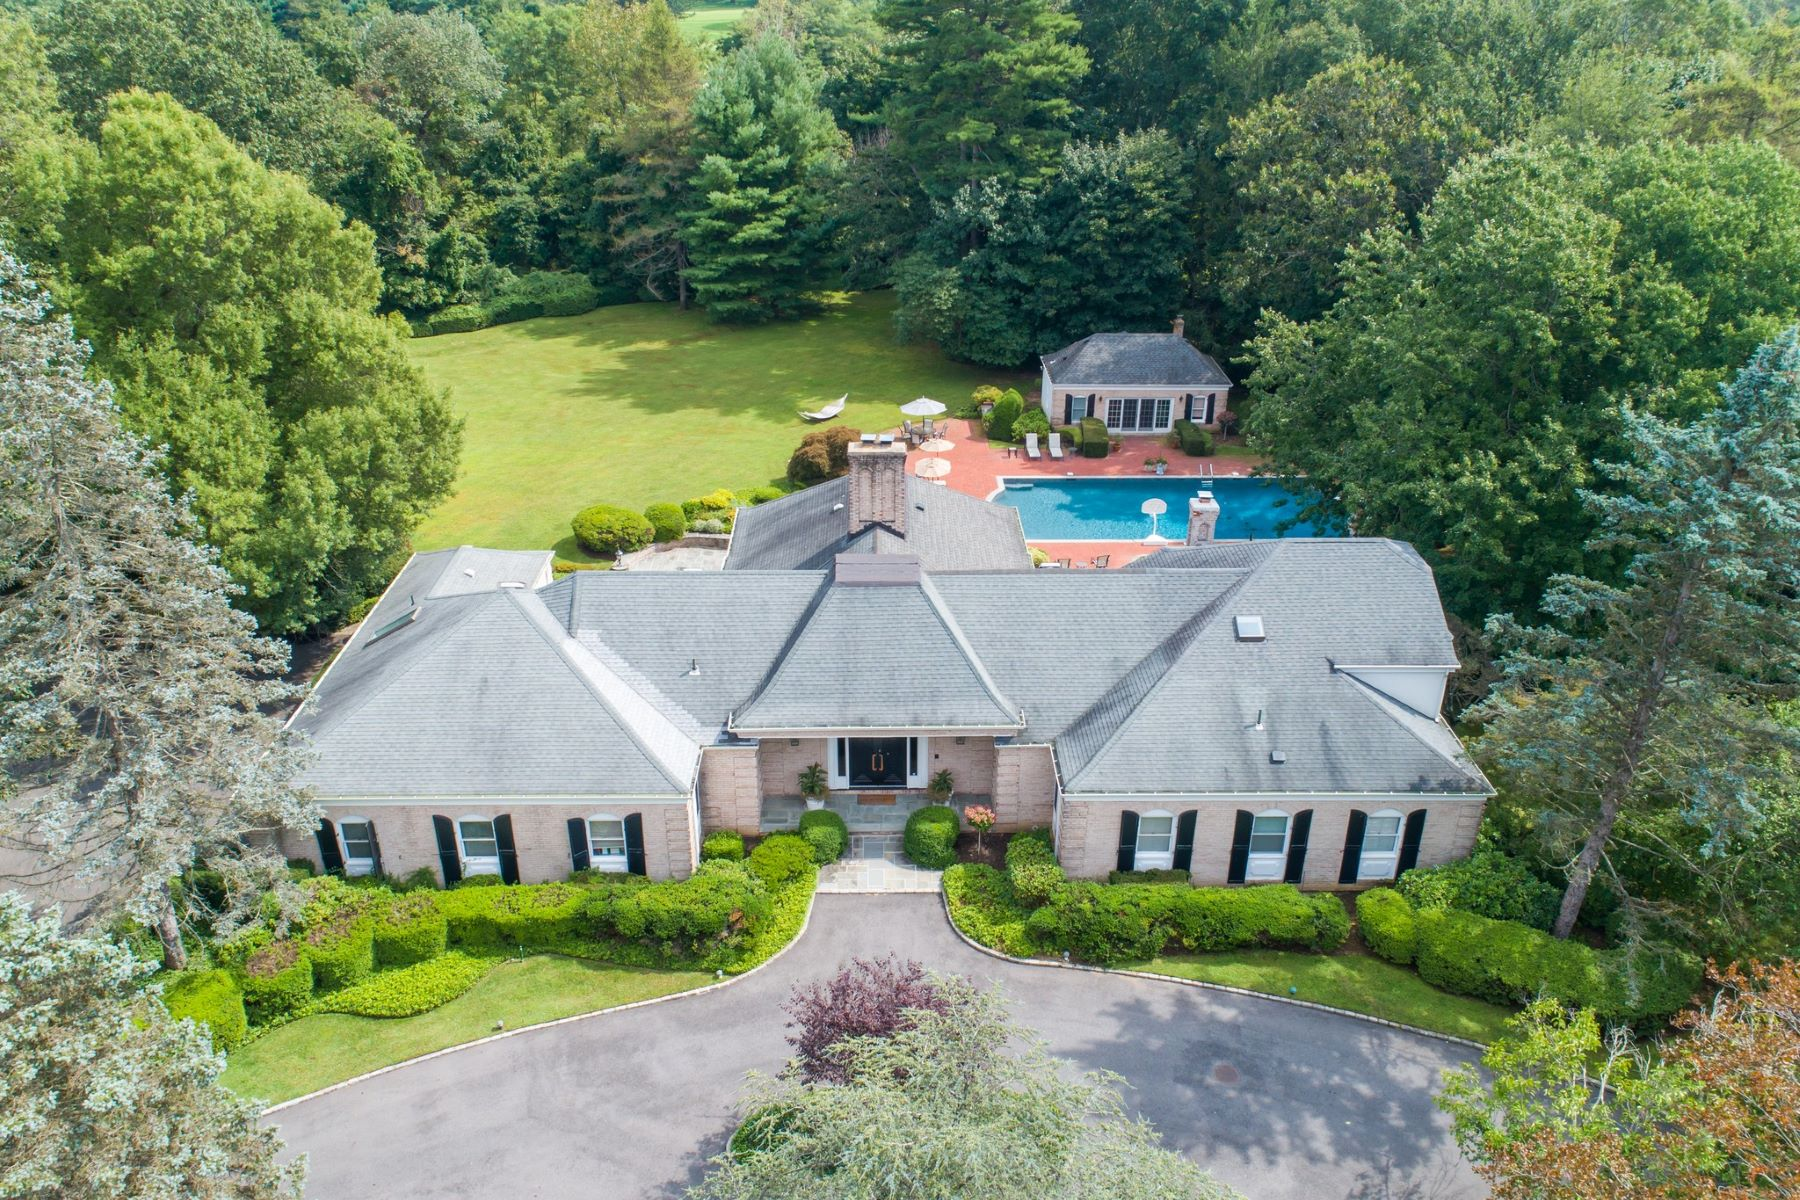 Single Family Homes for Sale at Old Westbury 31 Applegreen Dr Old Westbury, New York 11568 United States